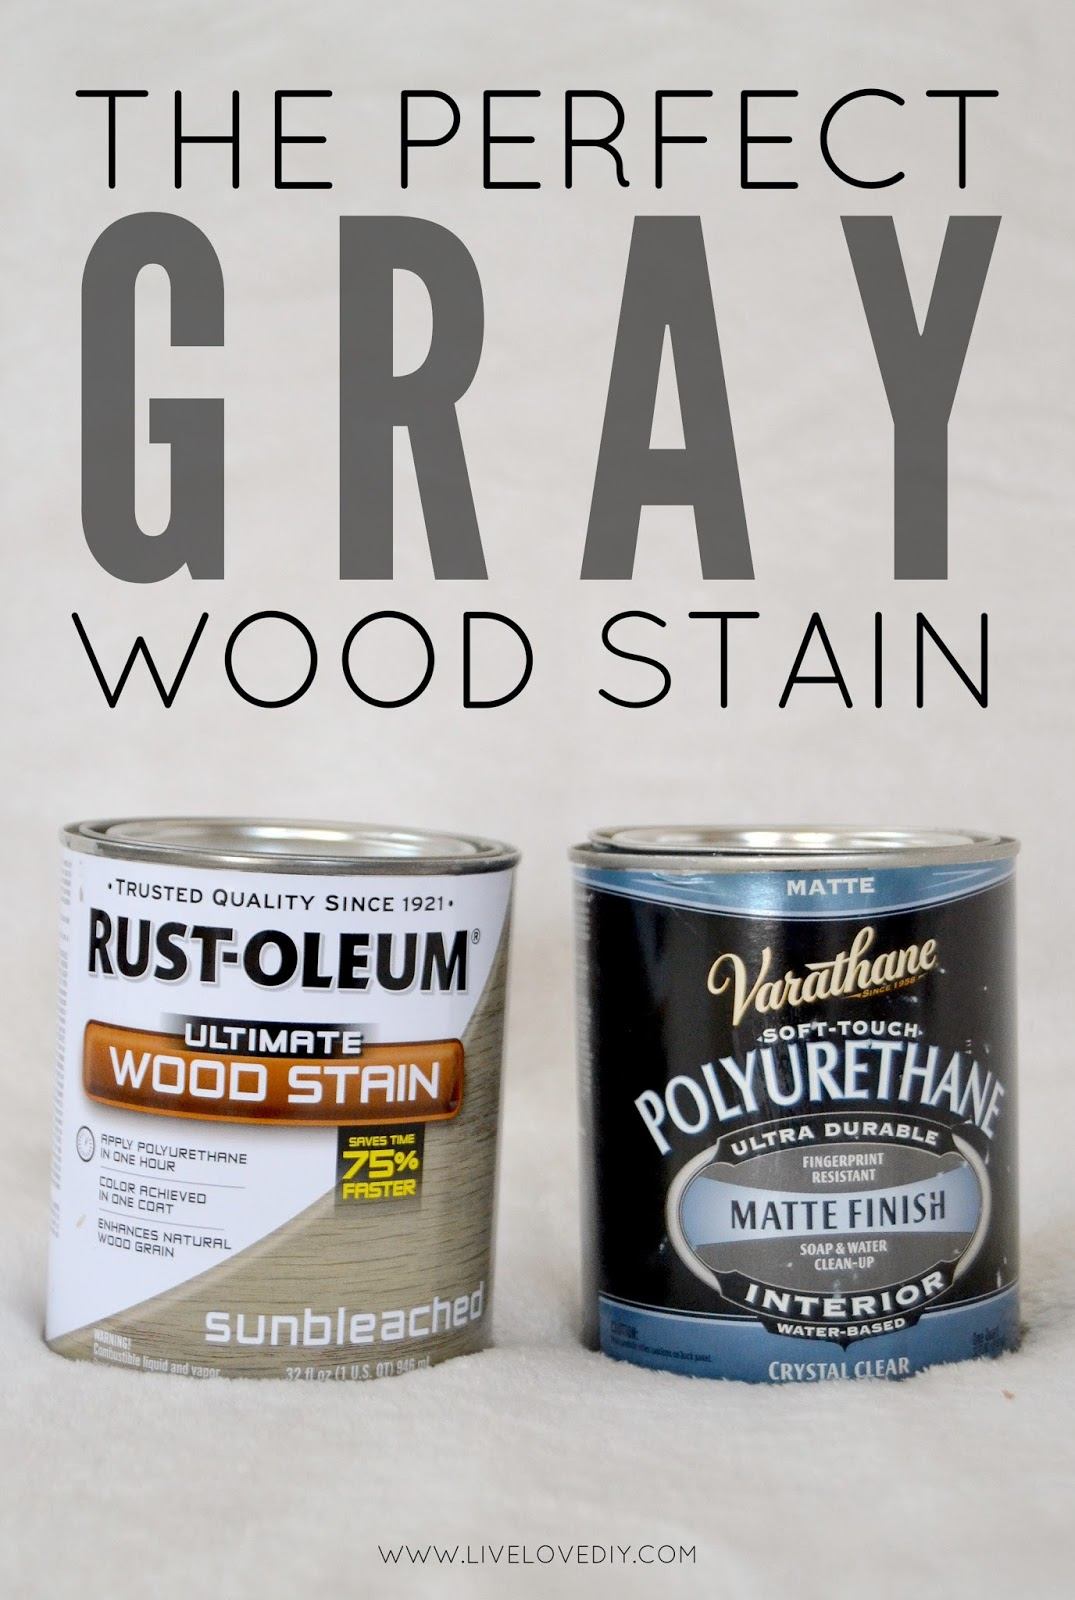 Diy Ikea Rast Hack With Sunbleached Gray Wood Stain